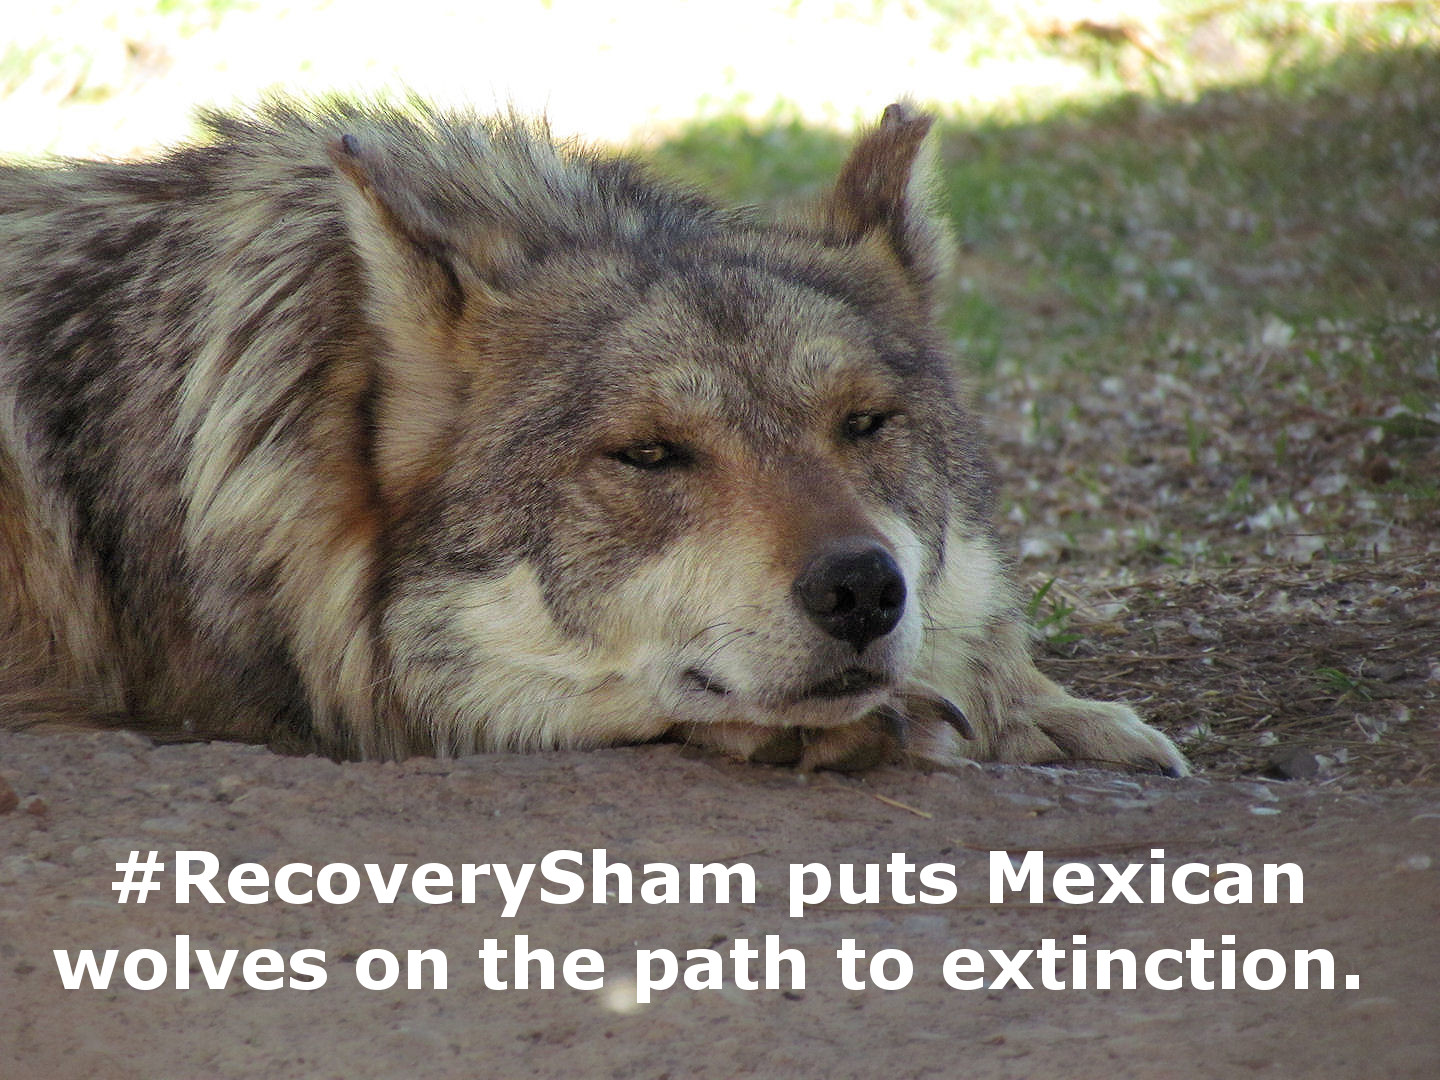 A mexican gray wolf faces a 28 percent chance of survival during the first year it is released in the wild